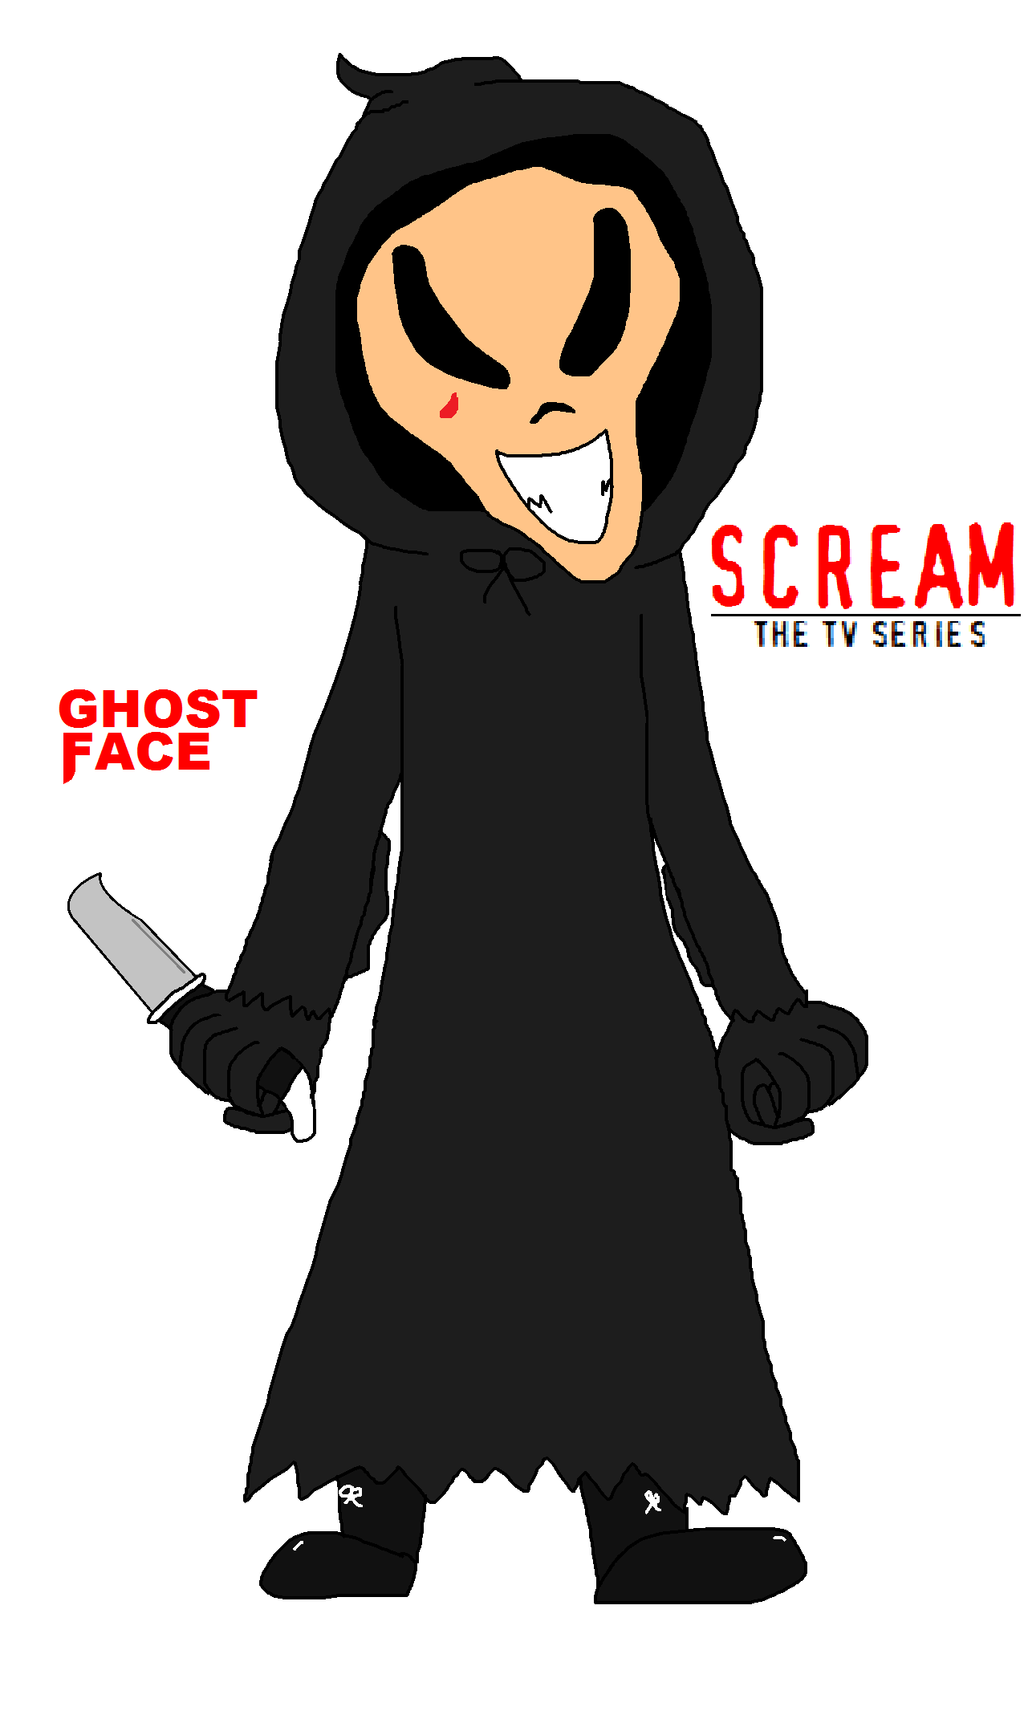 Screaming clipart ghost face Concept Ghostbustersmaniac MTV Explore 17